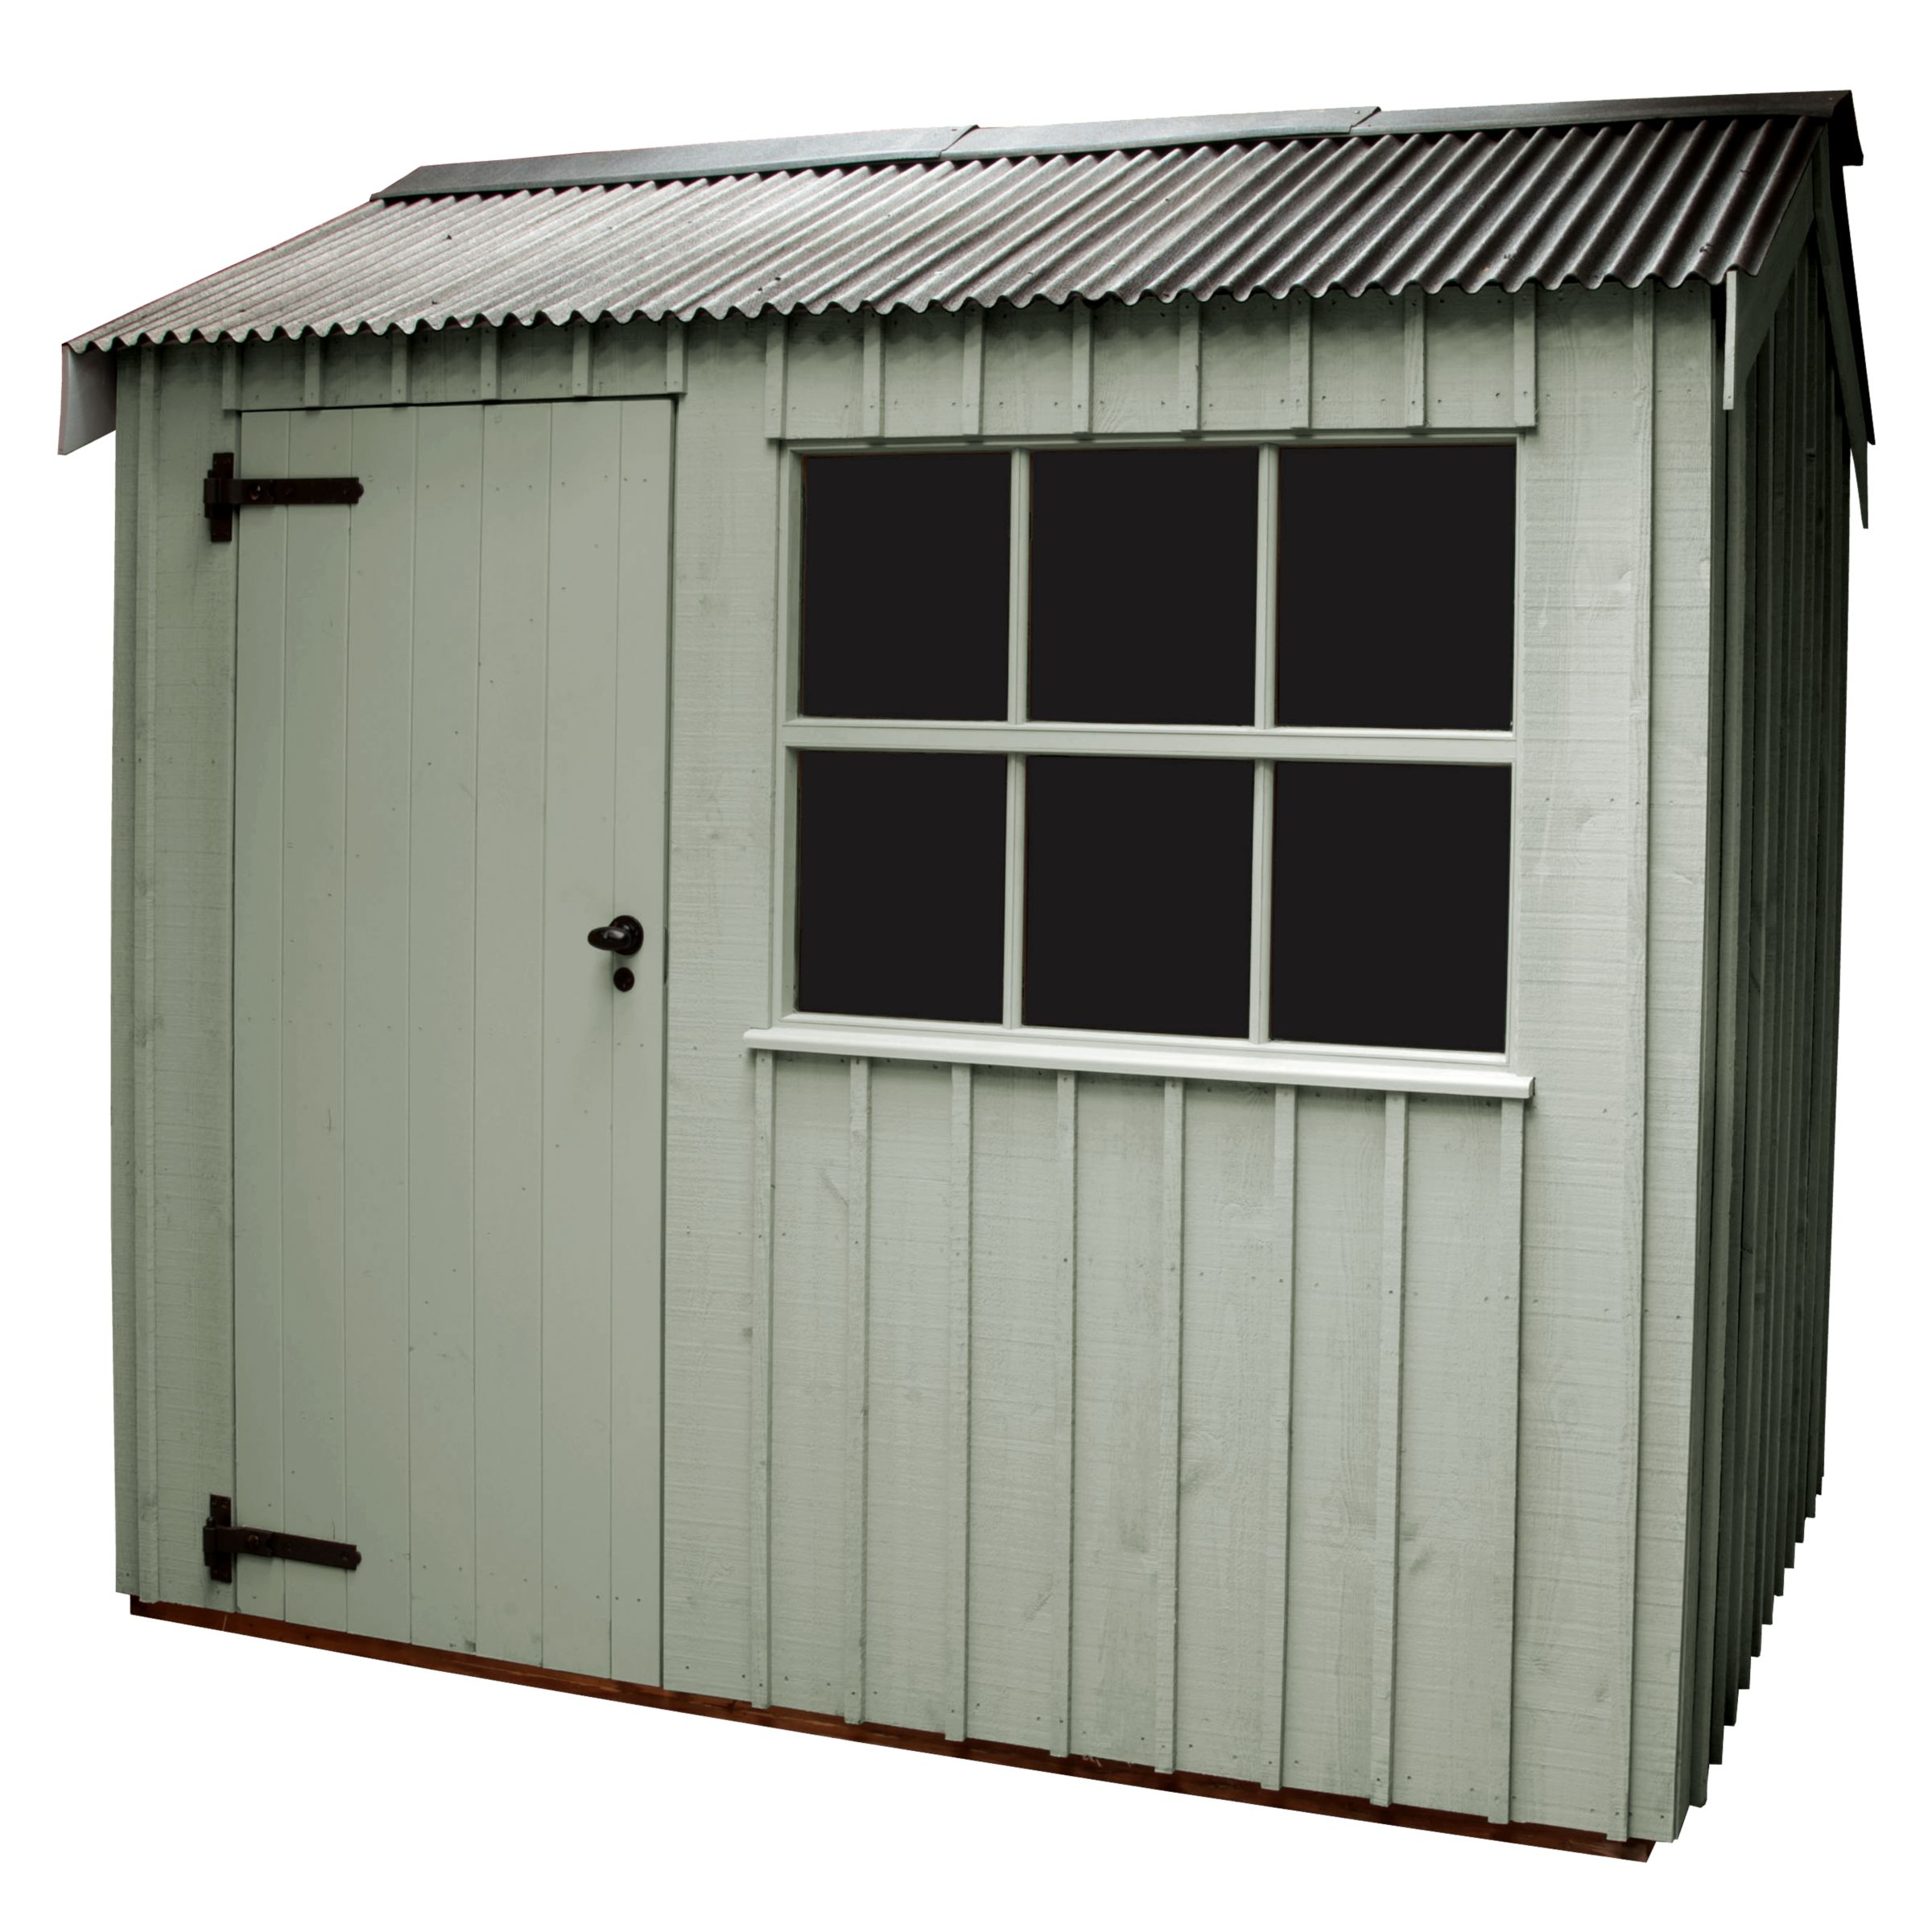 National Trust By Crane Felbrigg Fsc Garden Shed, 2.4x3m